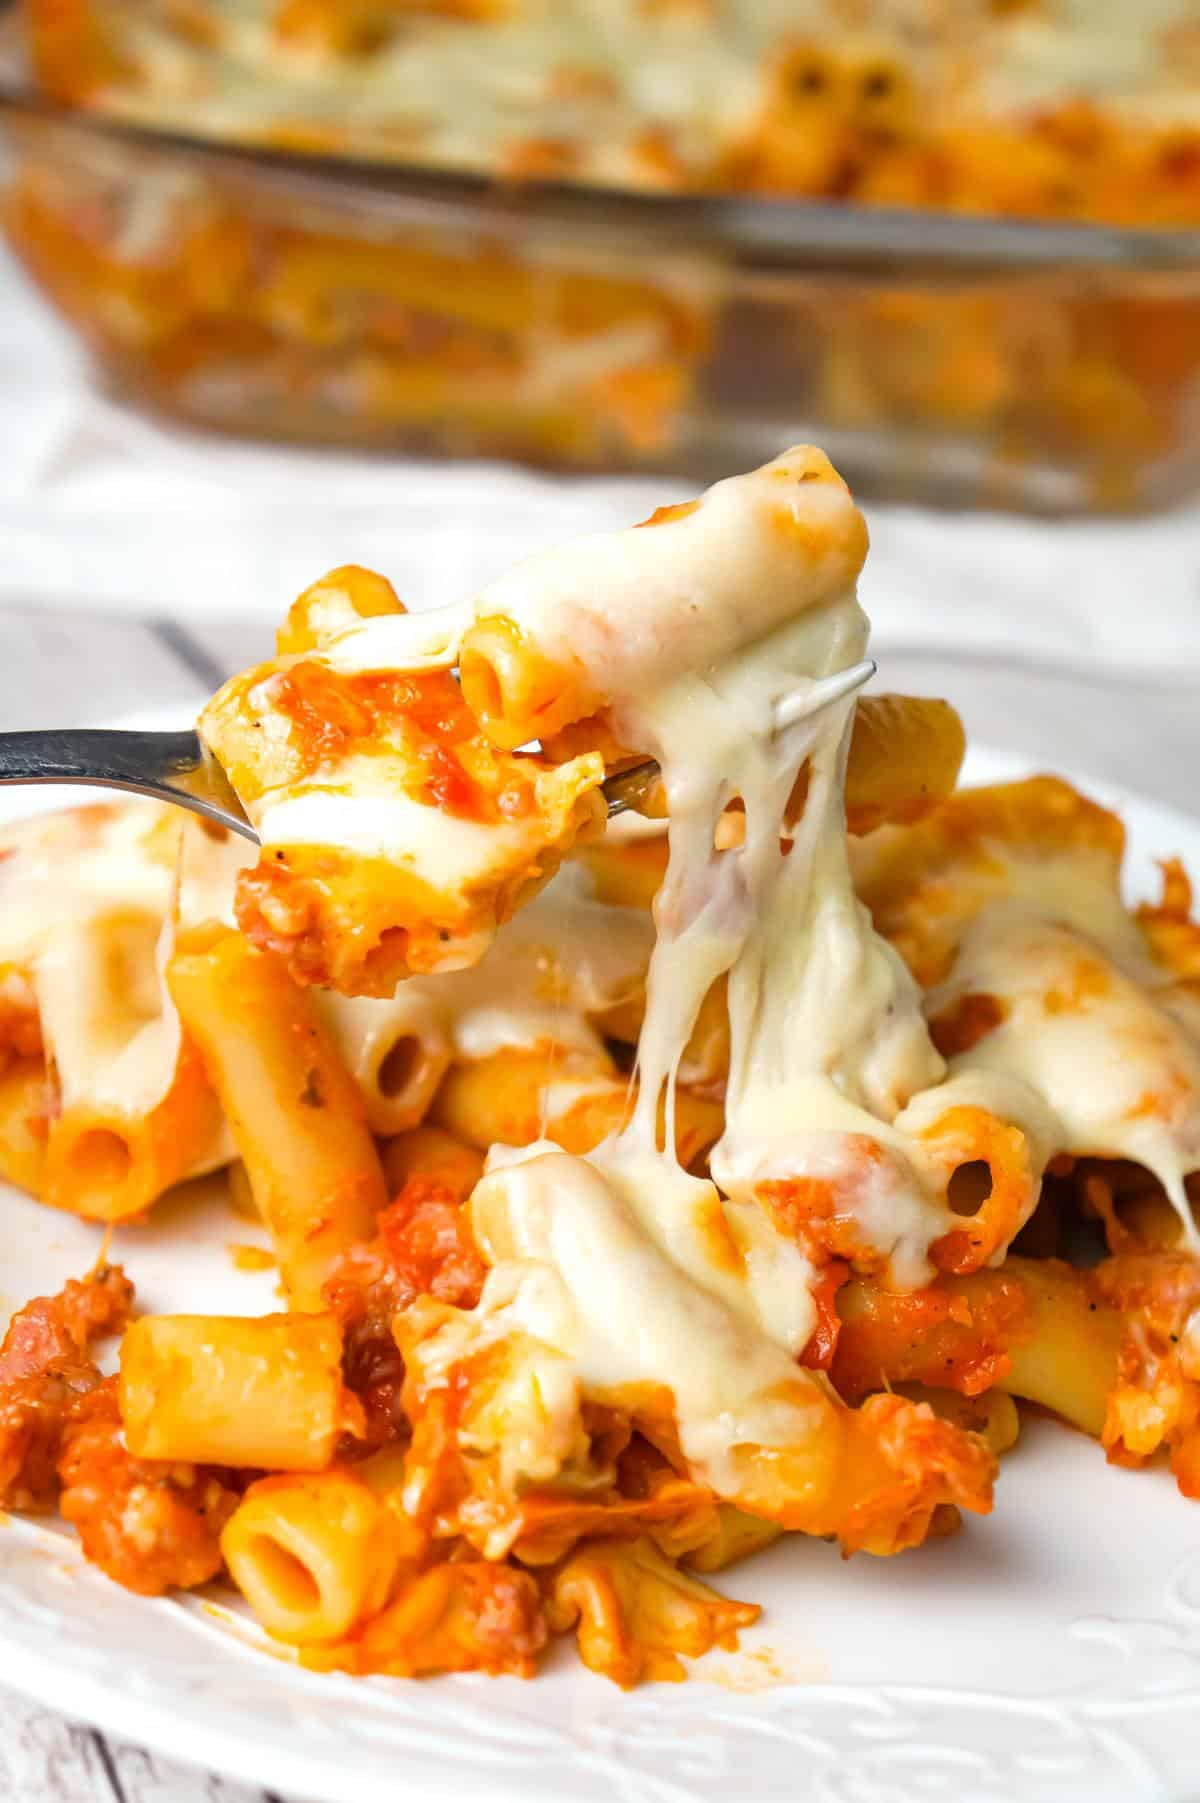 Baked Ziti with Sausage is an easy pasta recipe loaded with crumbled Italian sausage meat, marinara sauce, chunks of string cheese and shredded mozzarella.